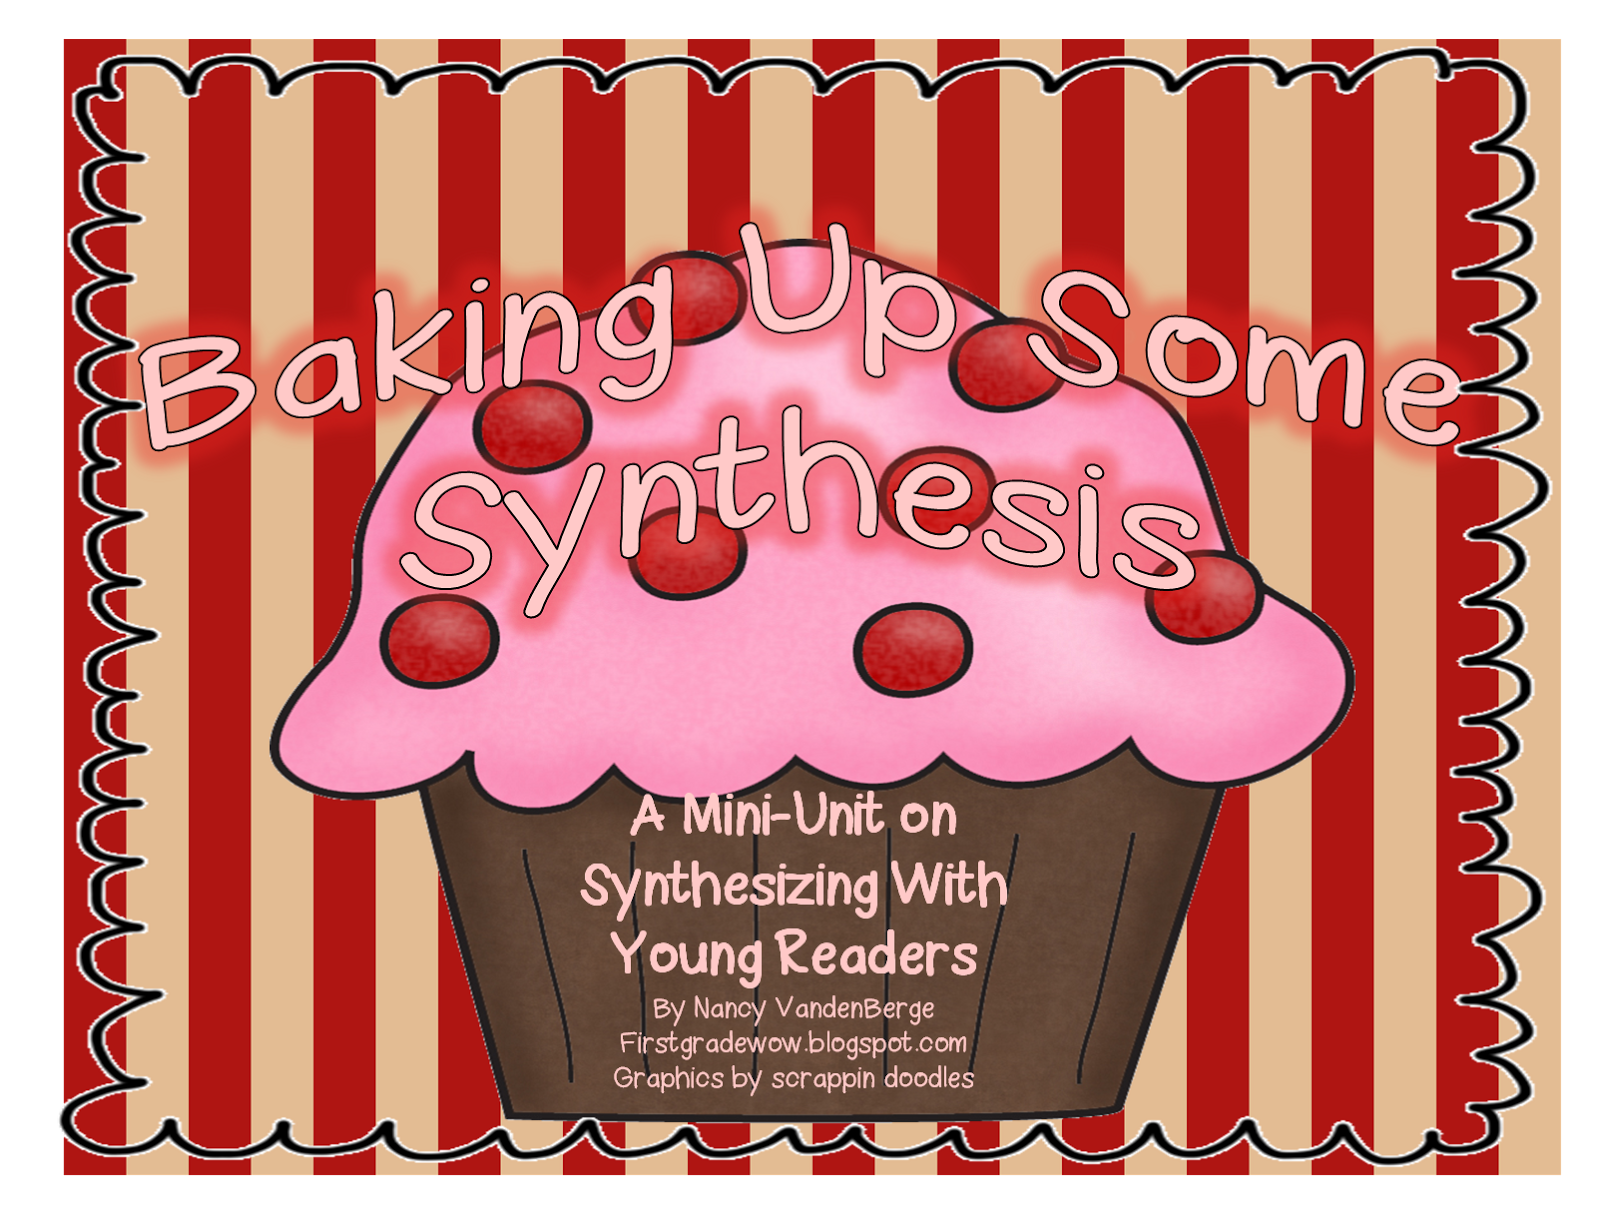 Chapter 9: Comparing and Synthesizing Sources